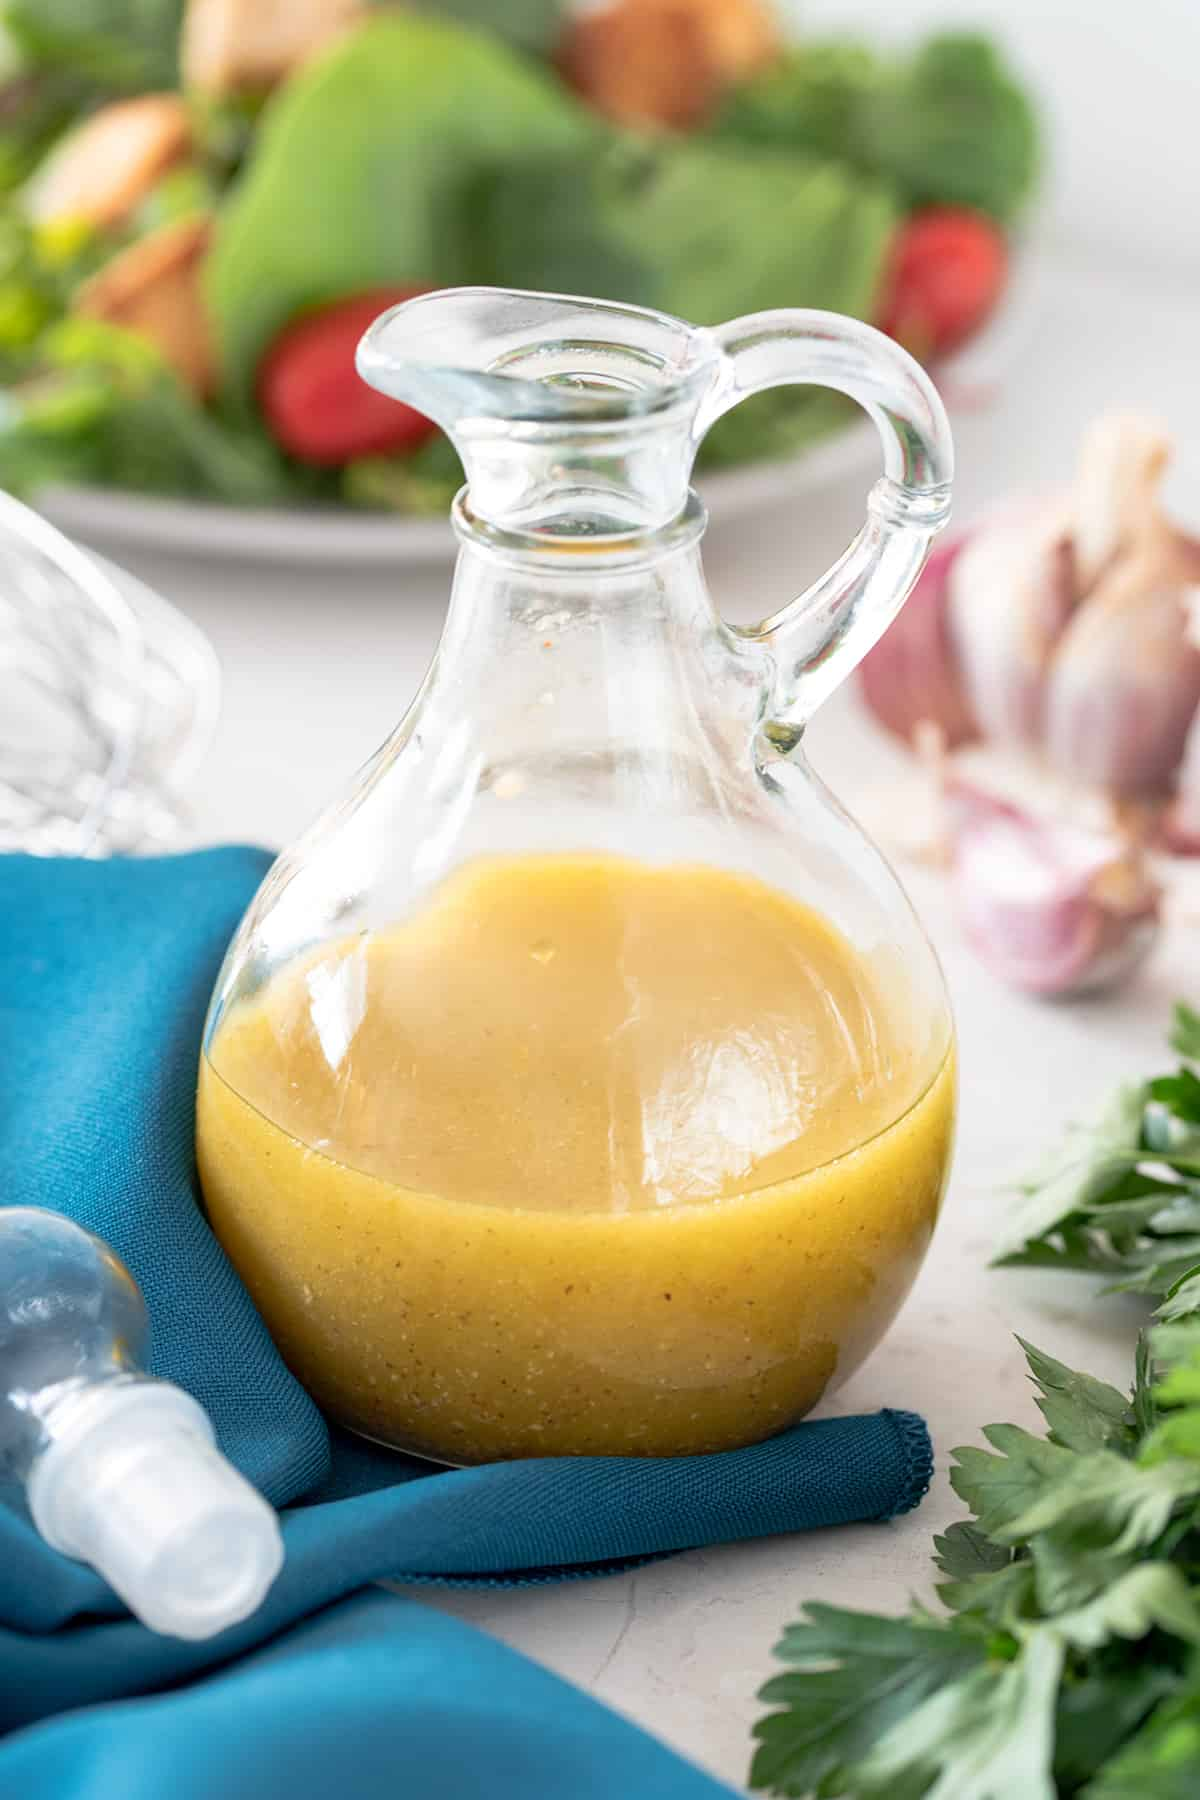 Cruet Bottle of White Balsamic Salad Dressing with ingredients scattered around.